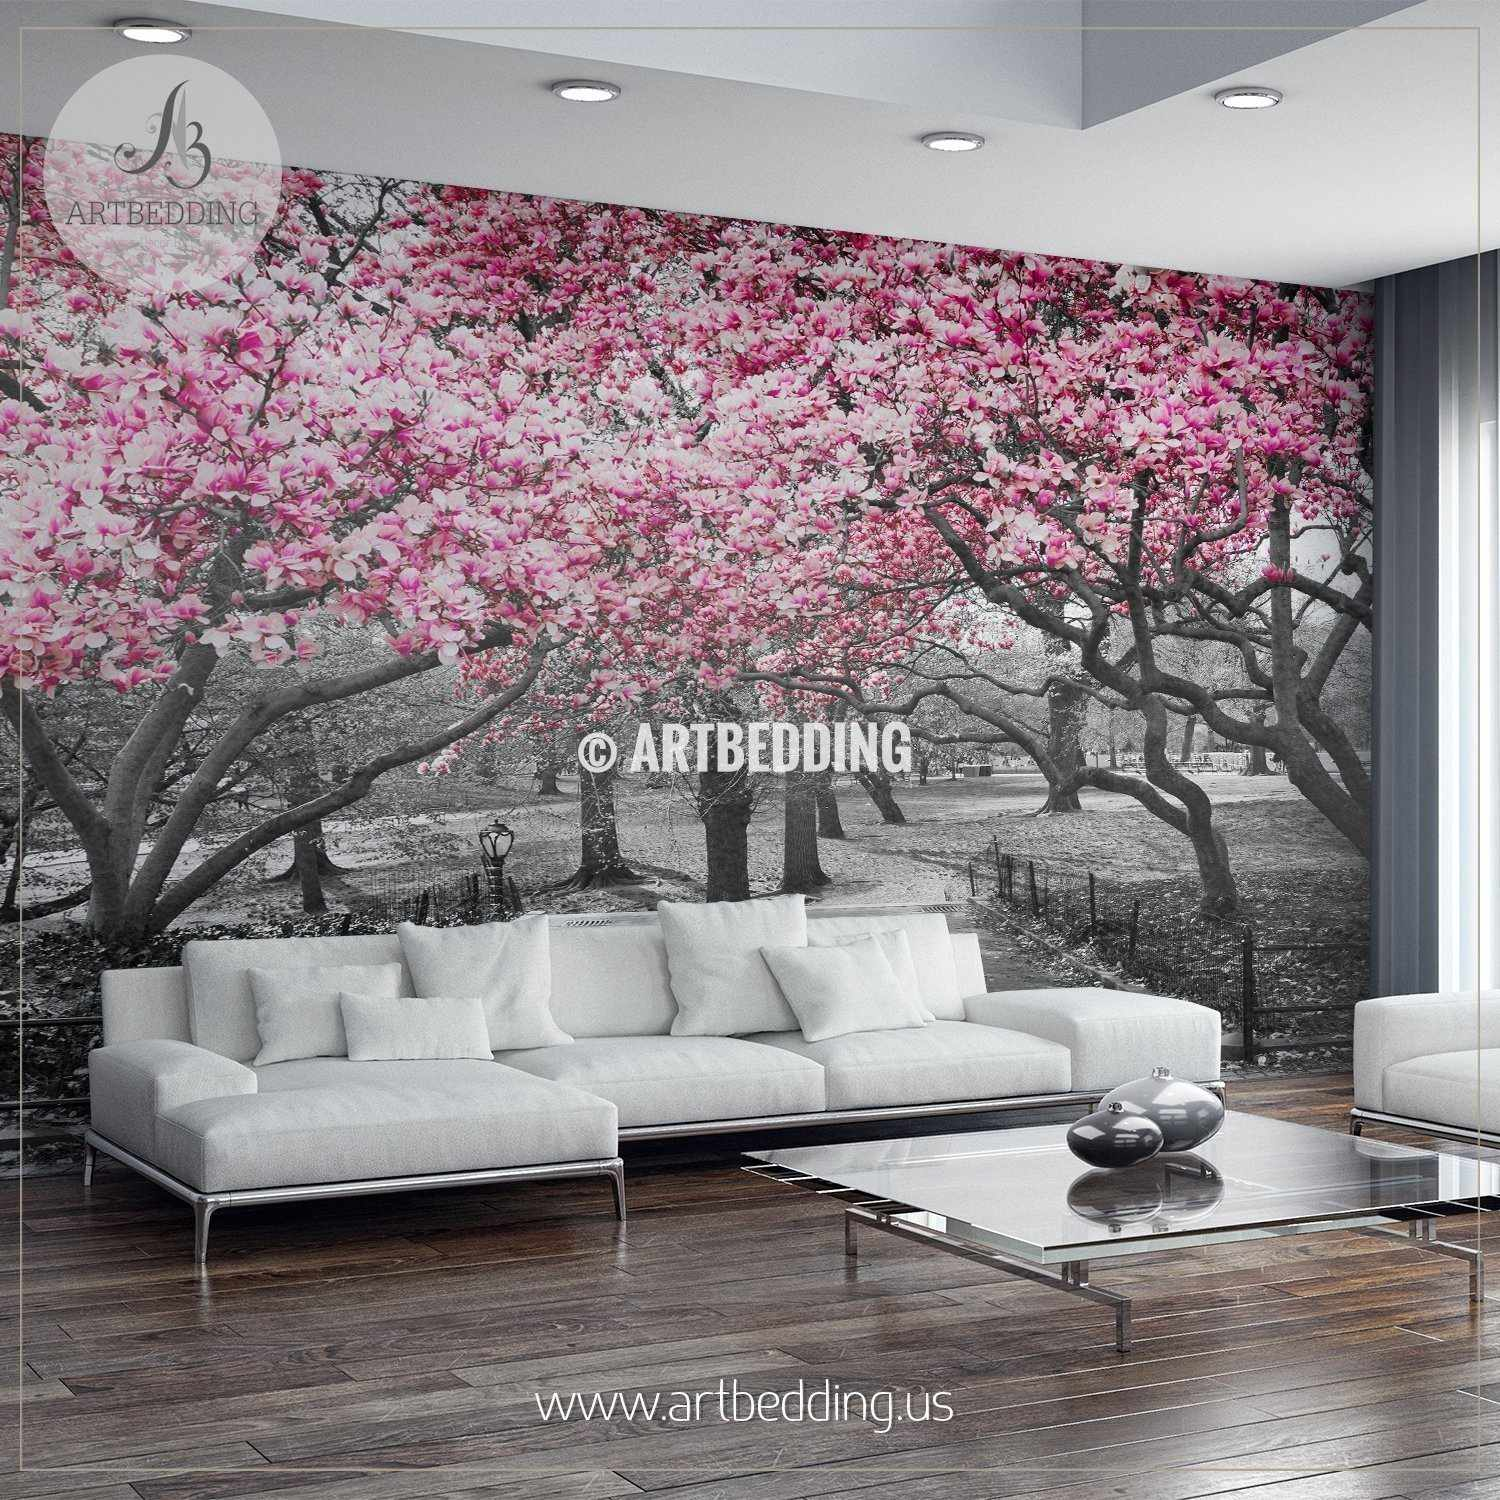 wall murals peel and stick self adhesive vinyl hd quality print